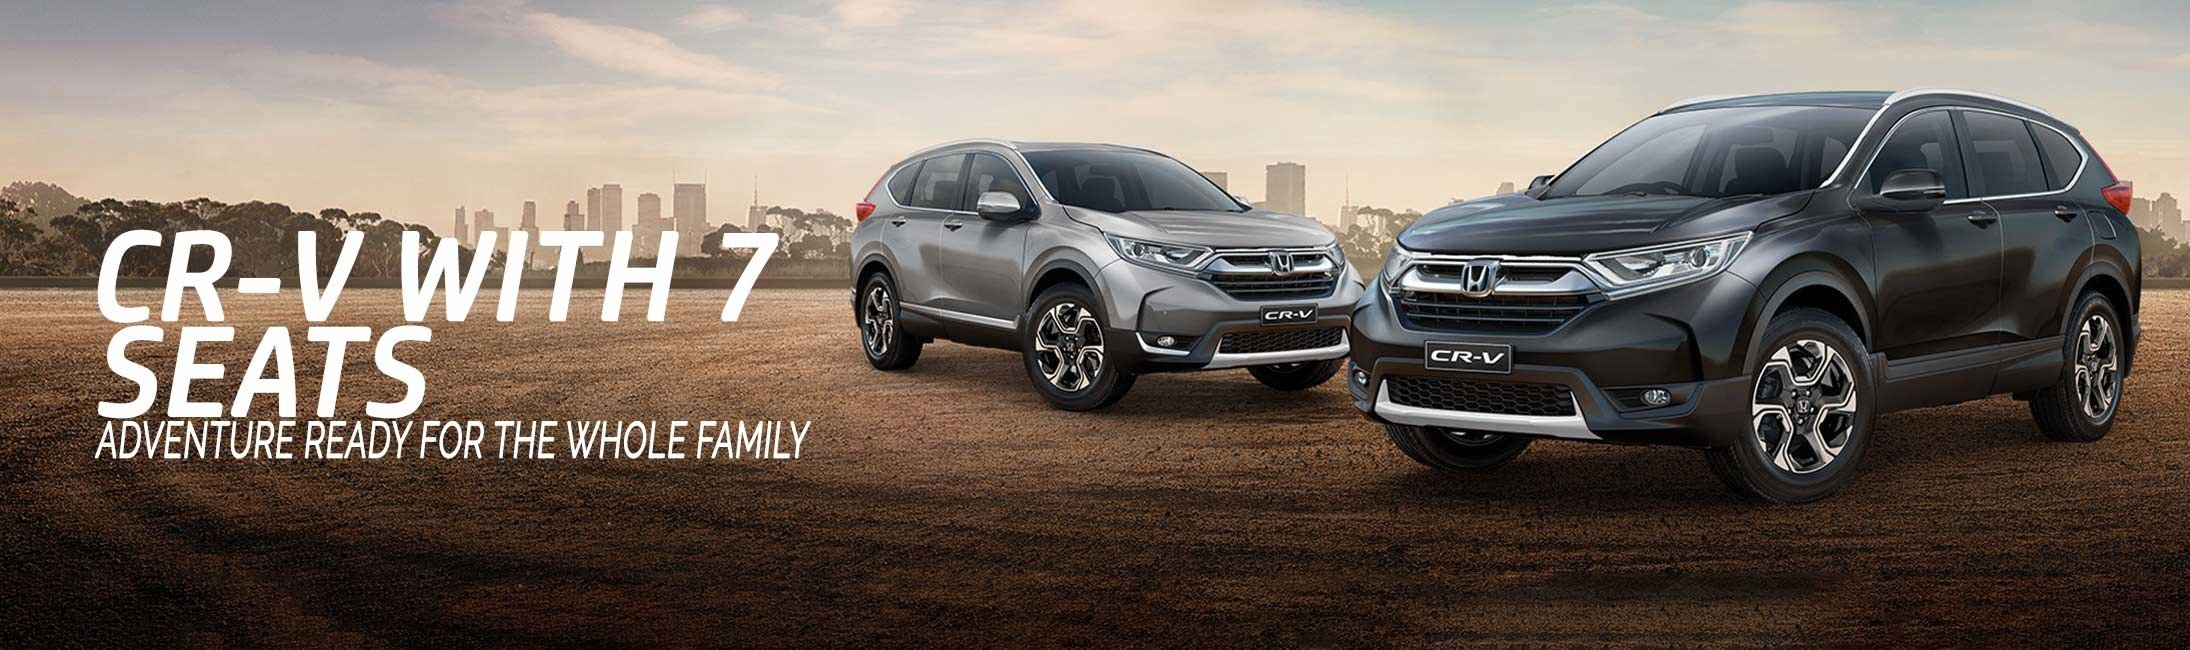 All new CRV test